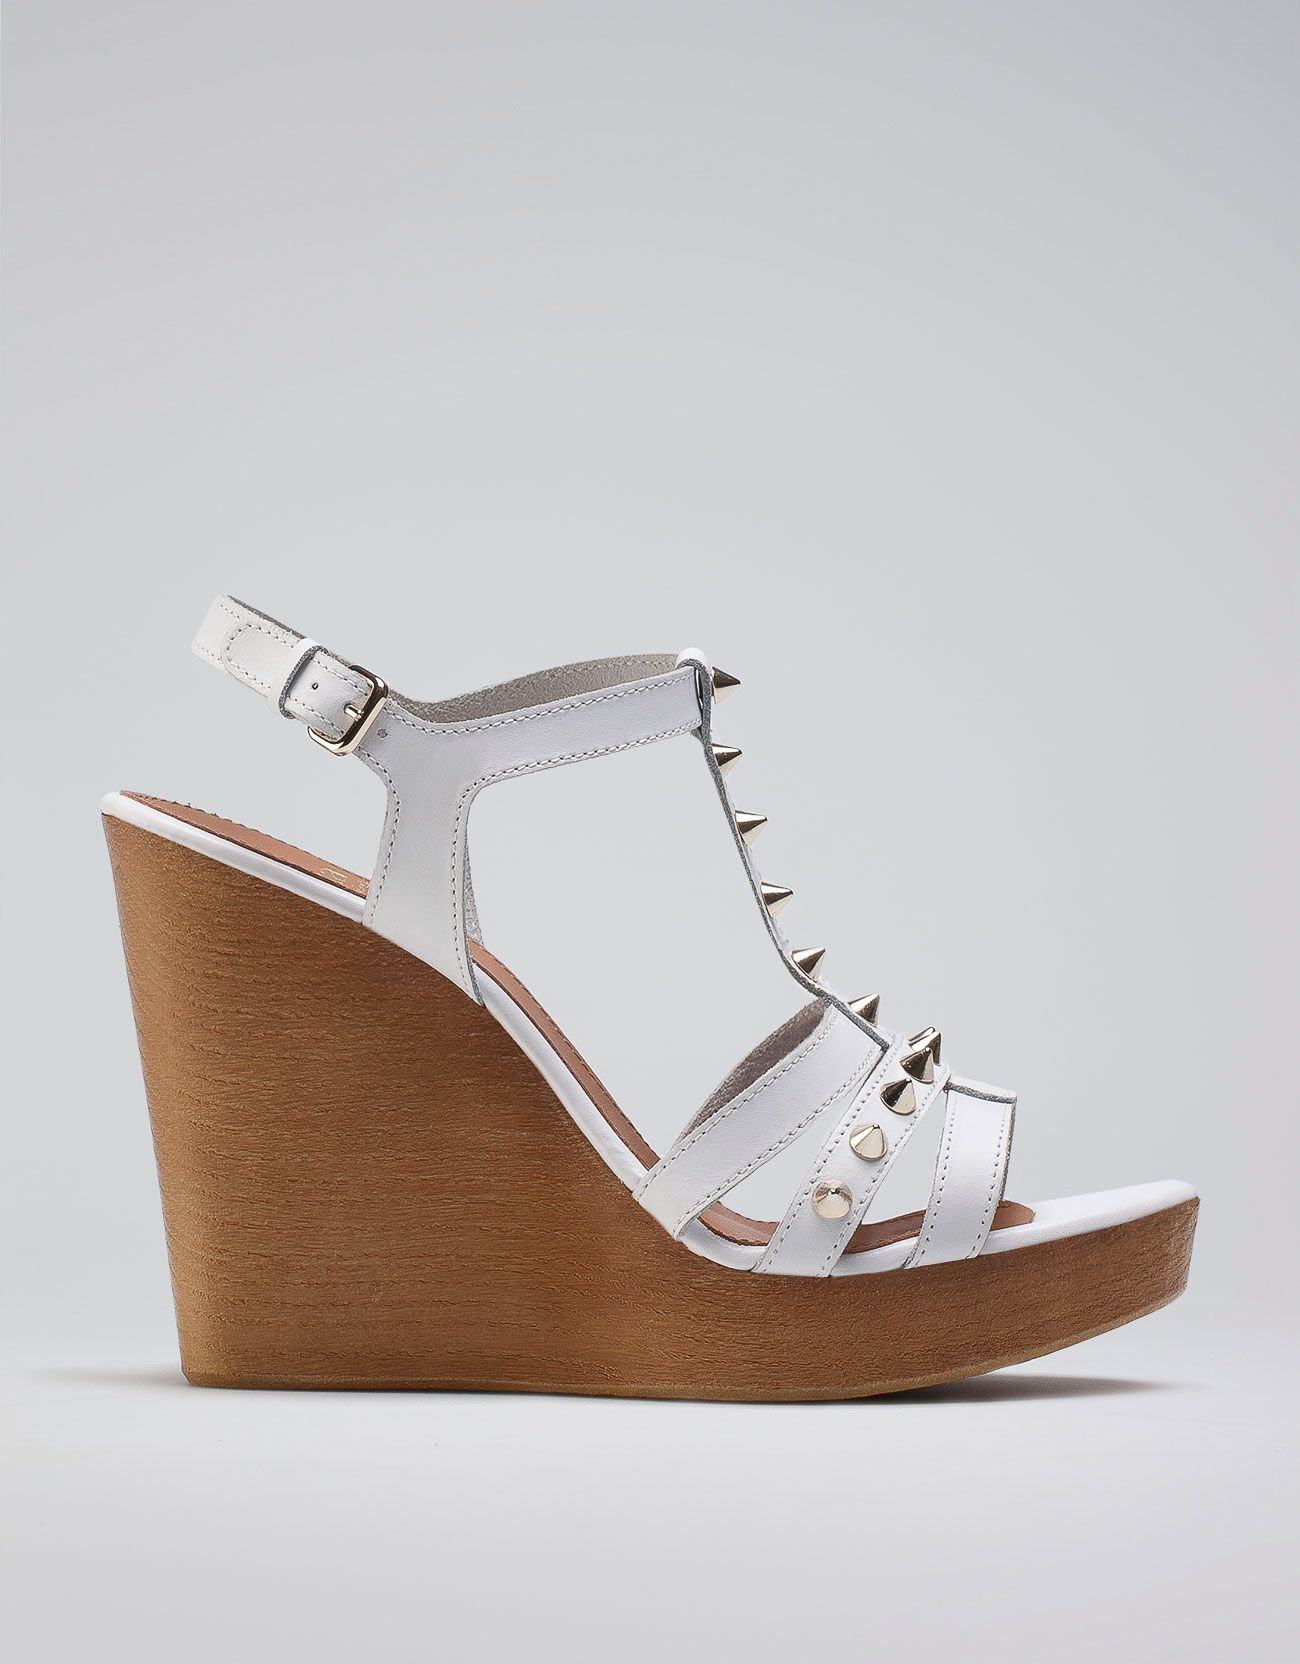 White leather wedges with silver studs